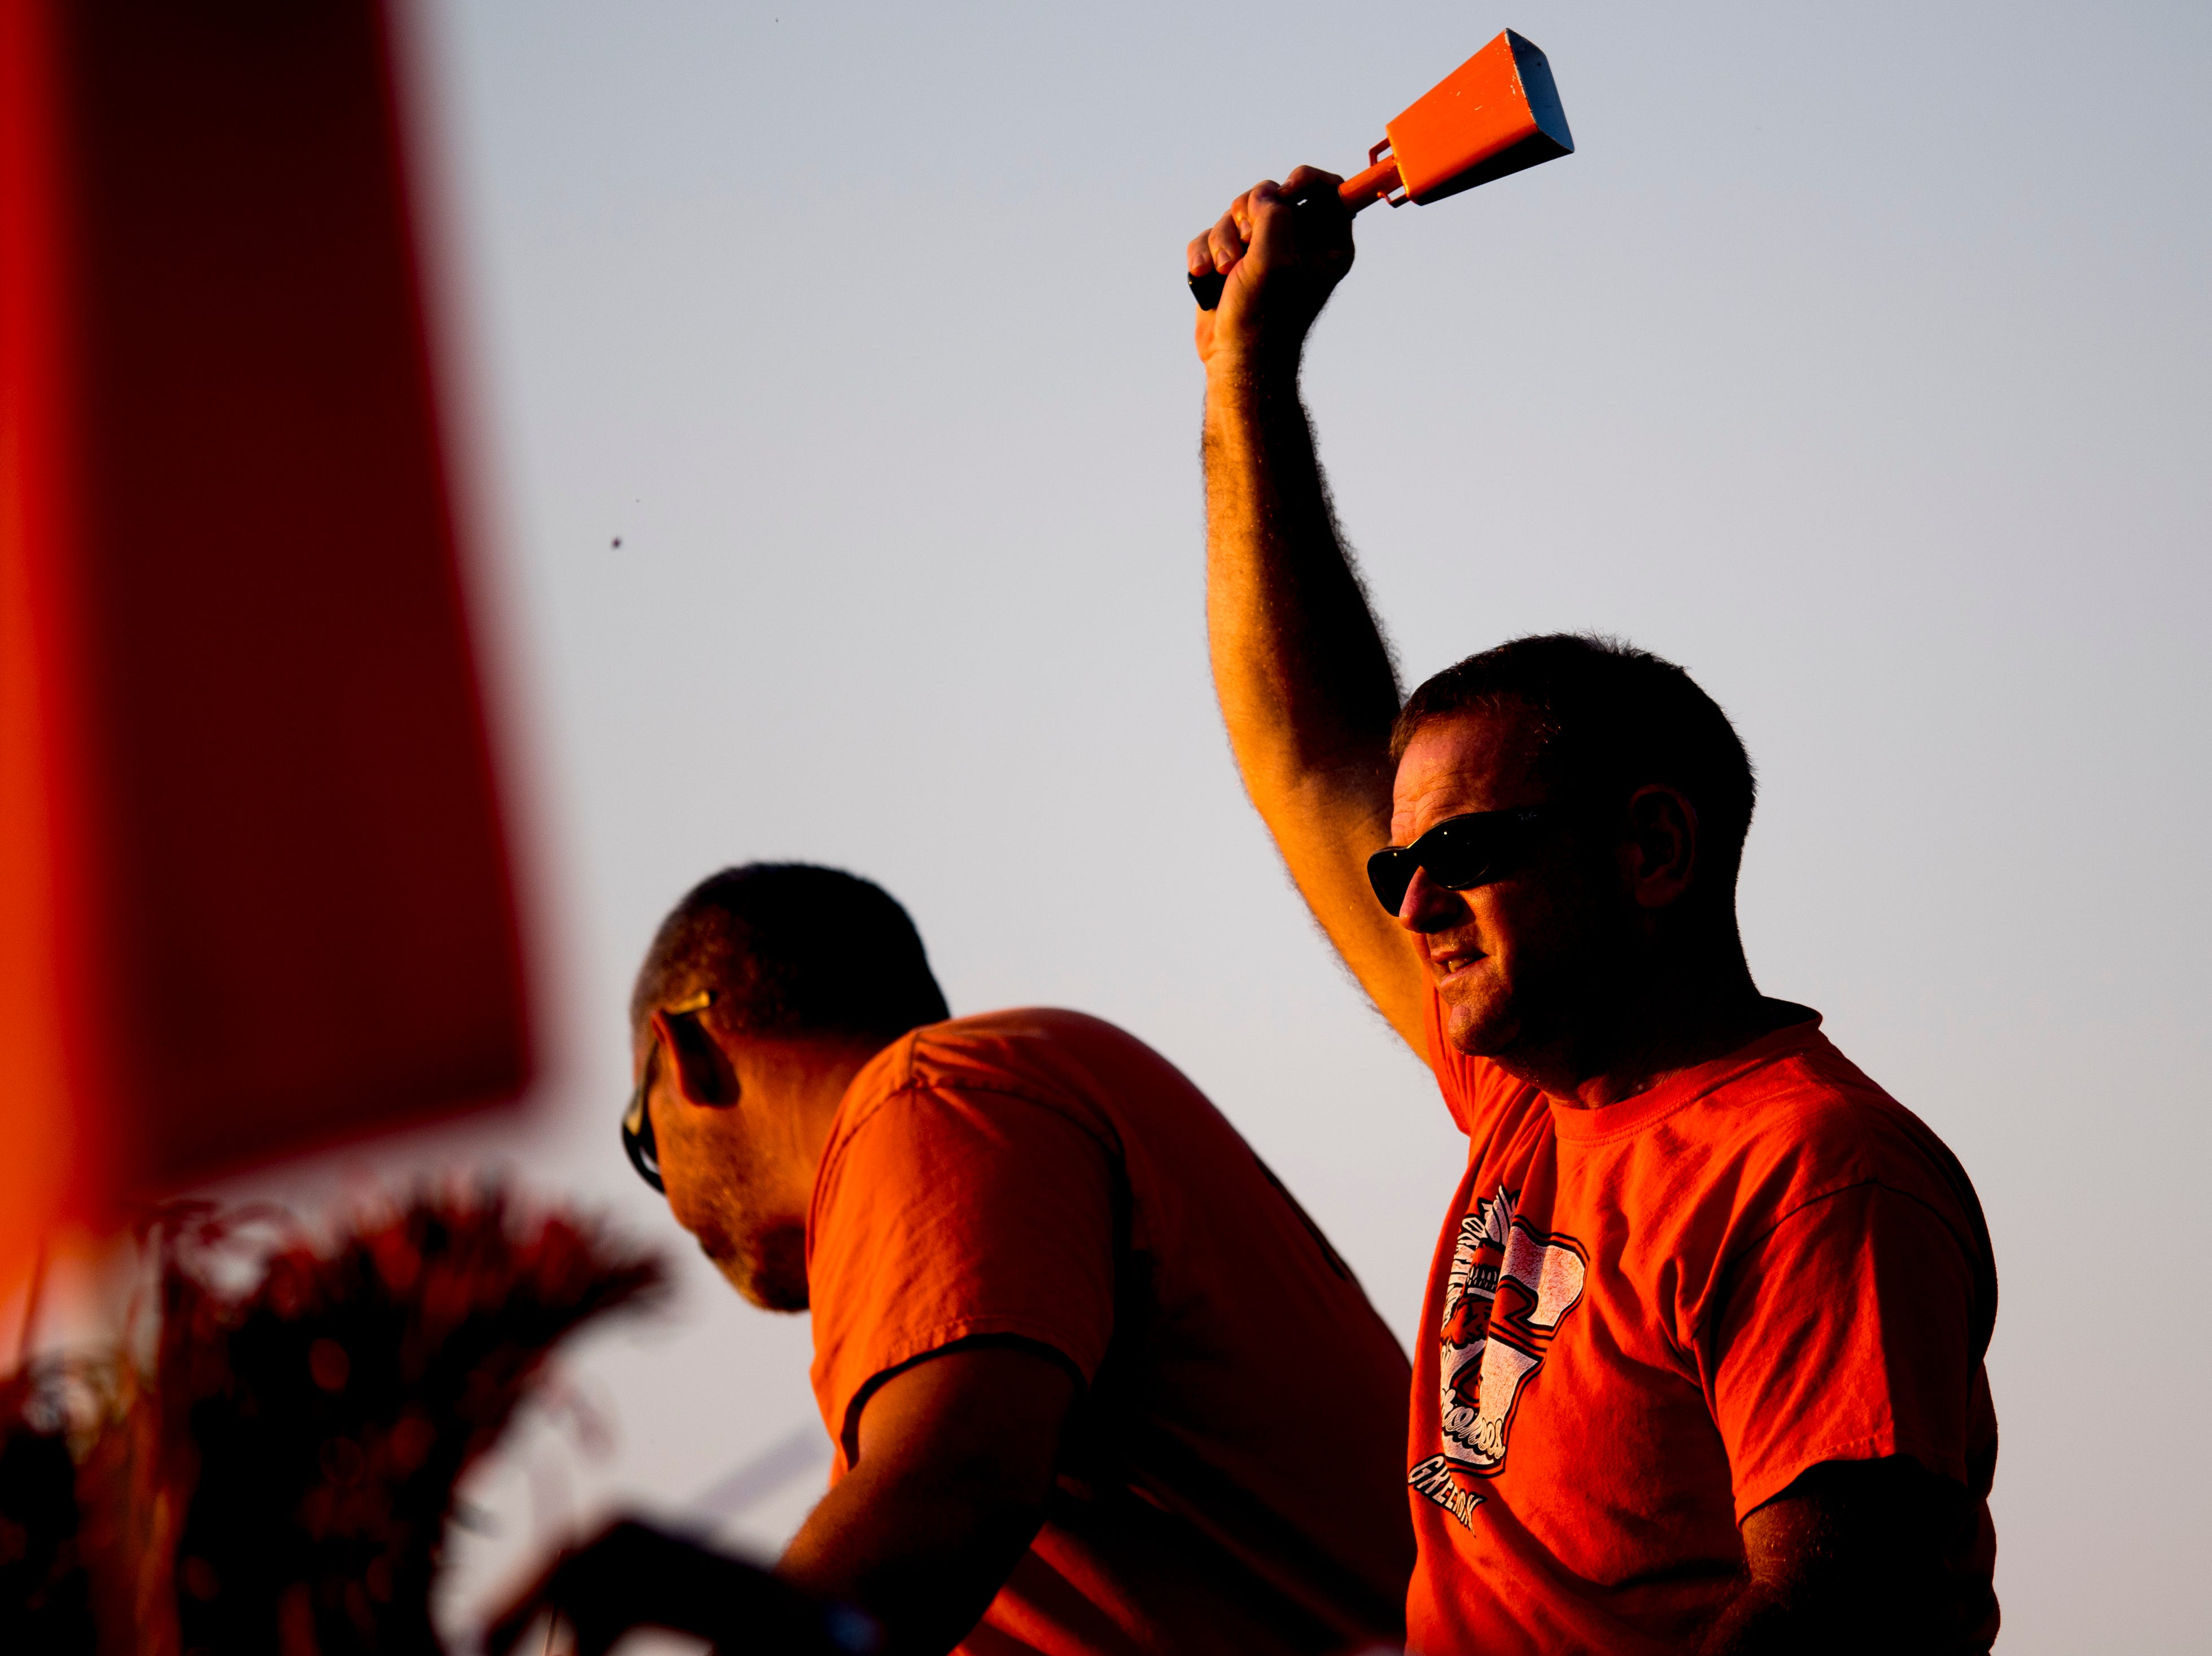 A Greenback fan cheers during a football game between Greenback and Grace Christian at Greenback High School in Greenback, Tennessee on Thursday, September 20, 2018.